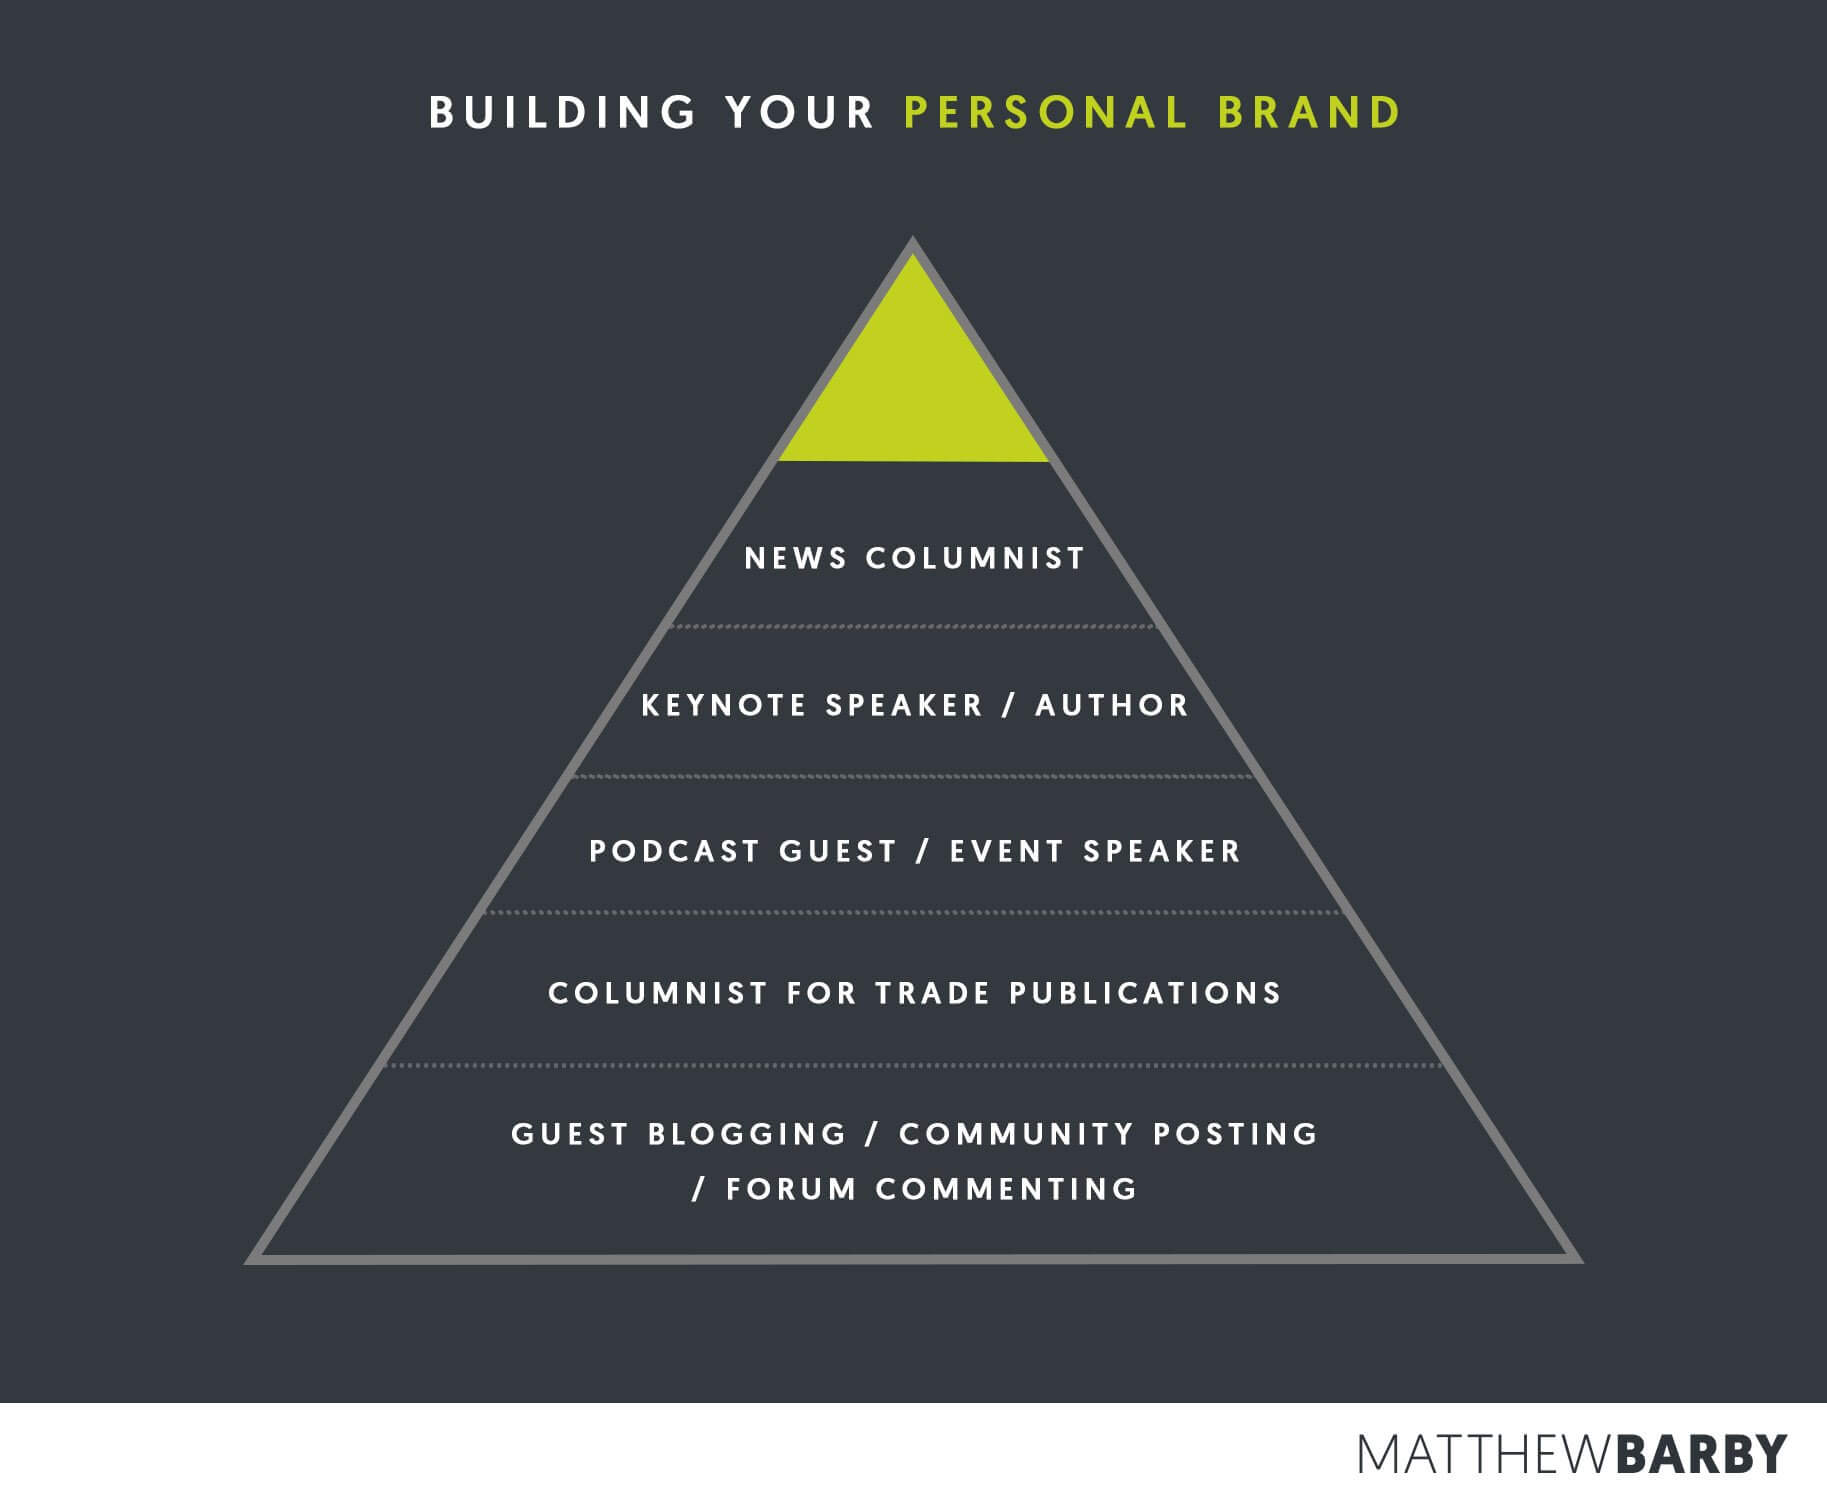 Pyramid of Influence - Matthew Barby